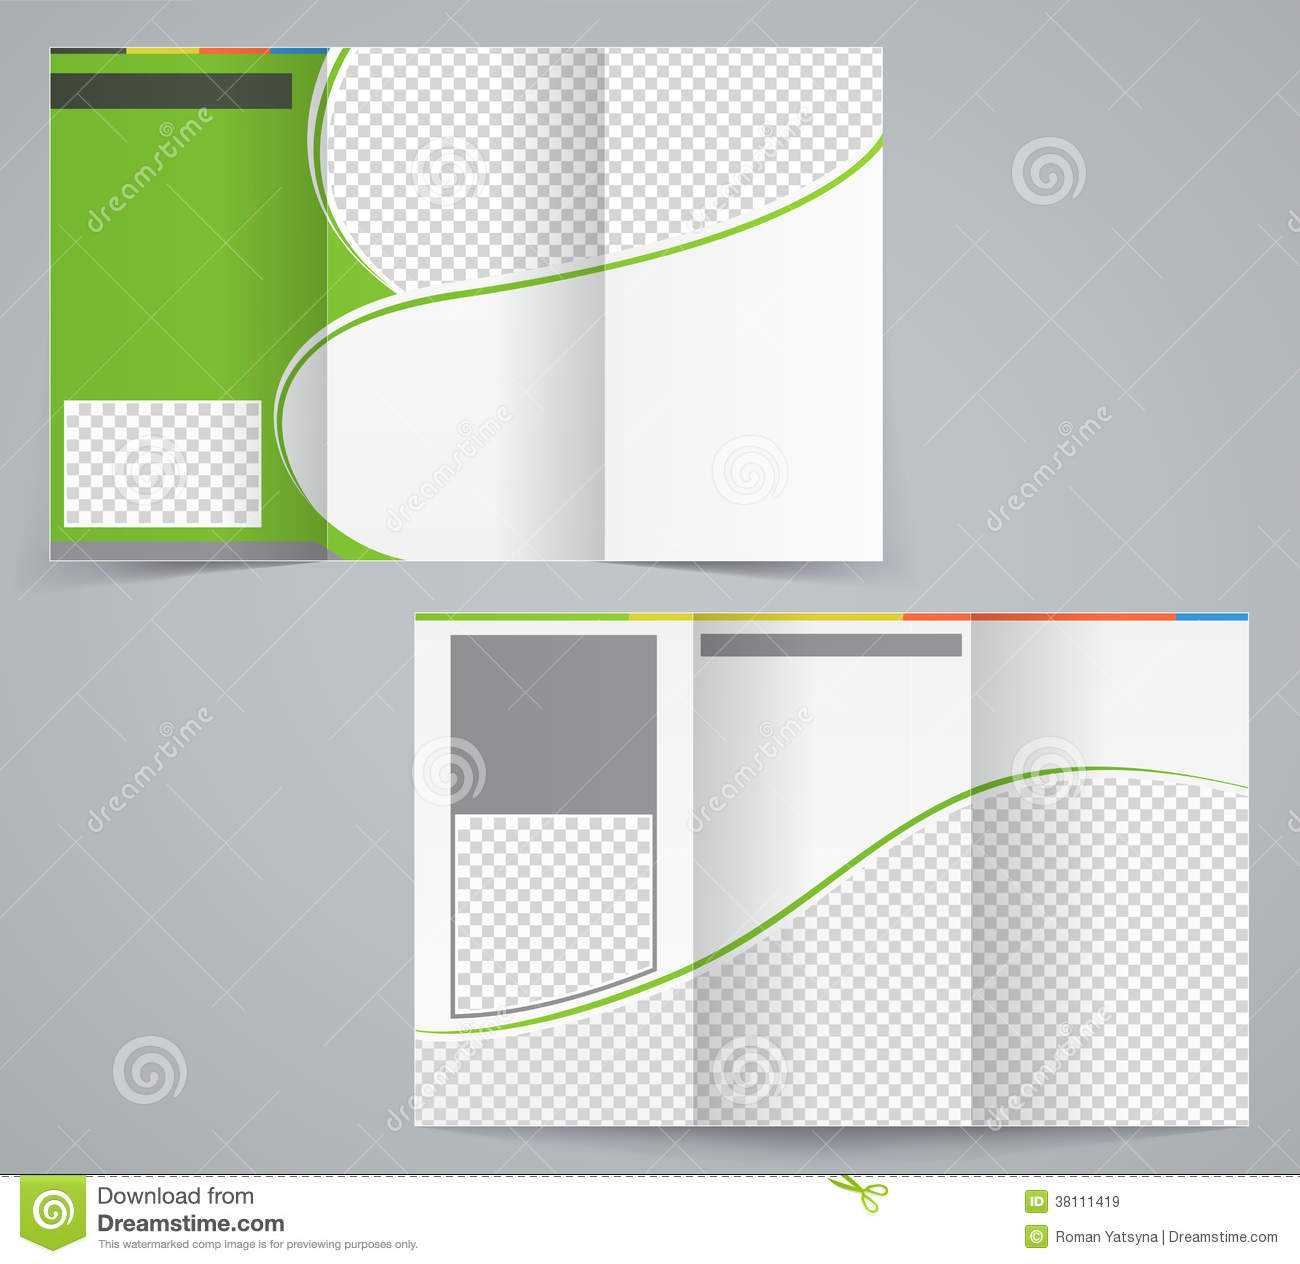 Tri Fold Business Brochure Template, Vector Green Stock Pertaining To Tri Fold Brochure Ai Template